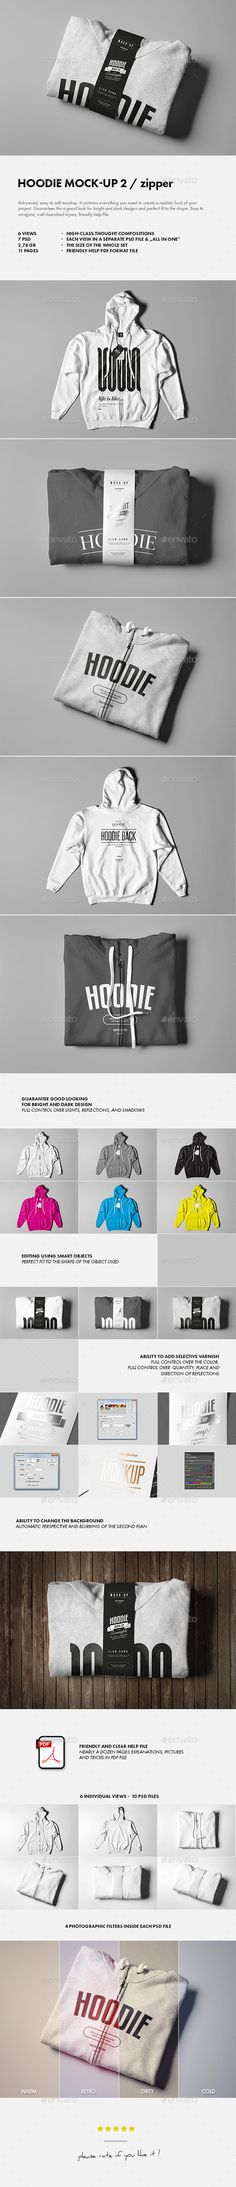 Hoodie Mock-Up #design Download: http://graphicriver.net/item/hoodie-mockup-2/14050155?ref=ksioks